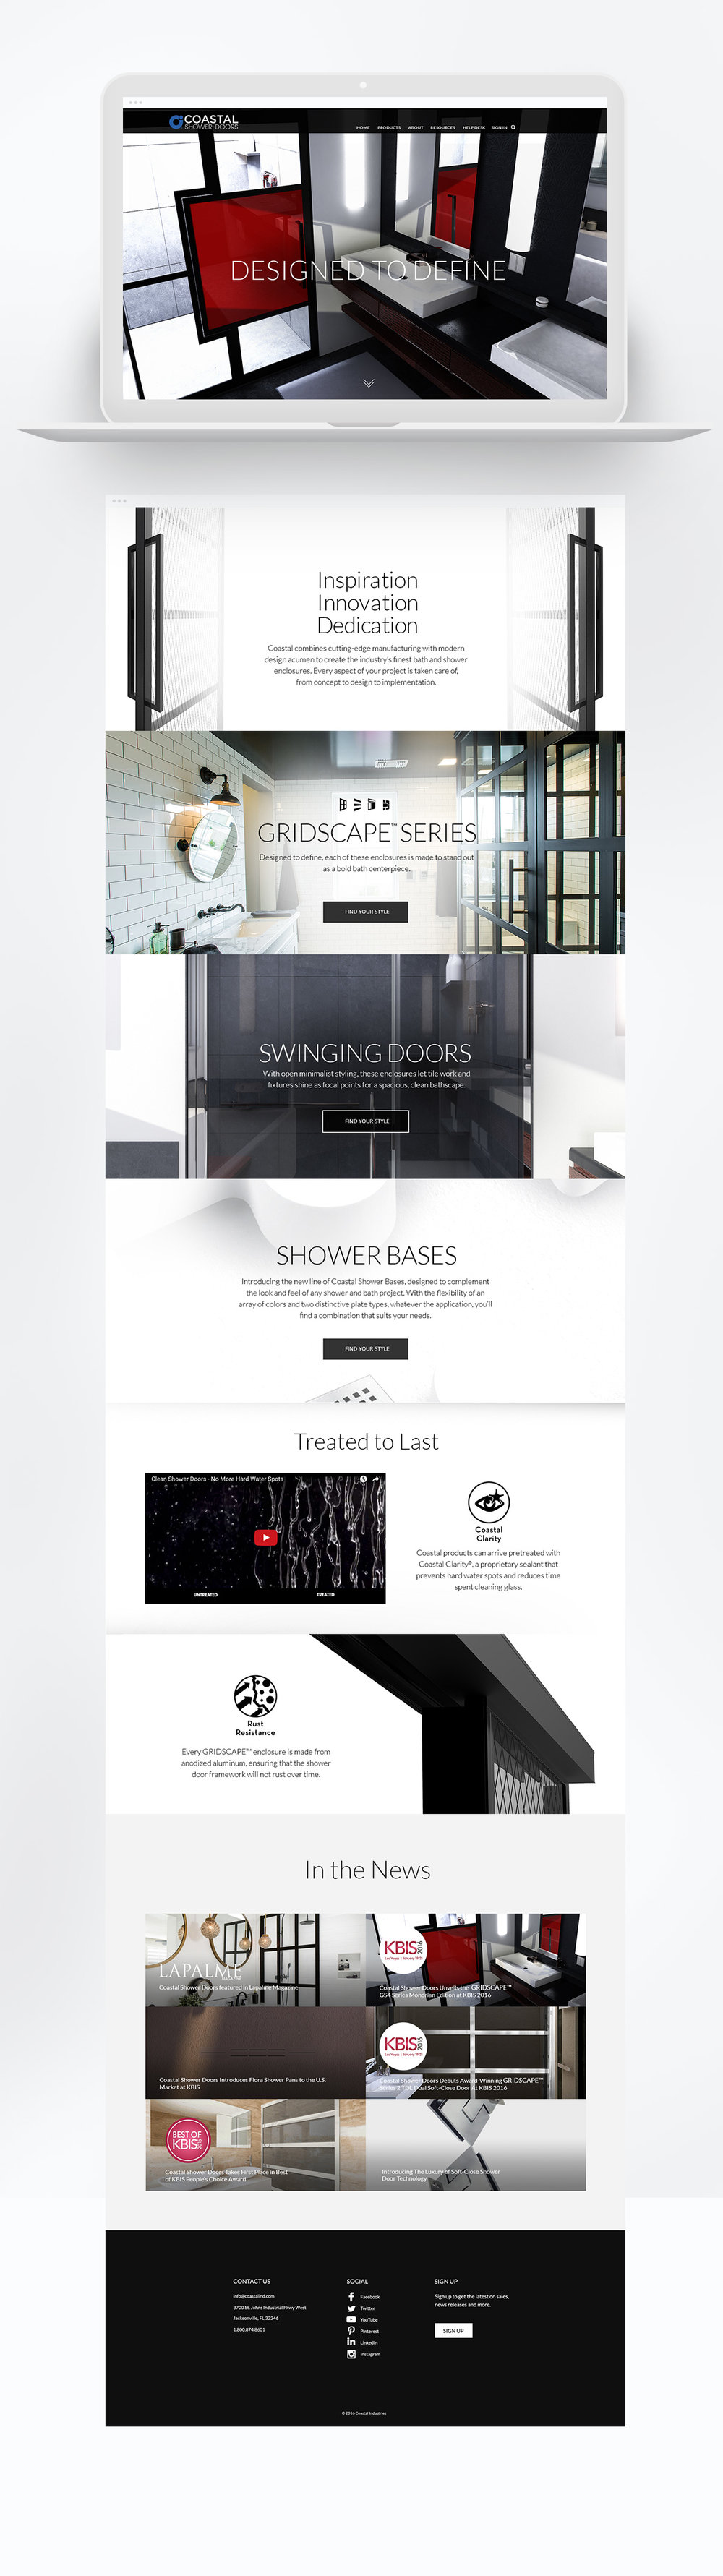 coastal shower doors website